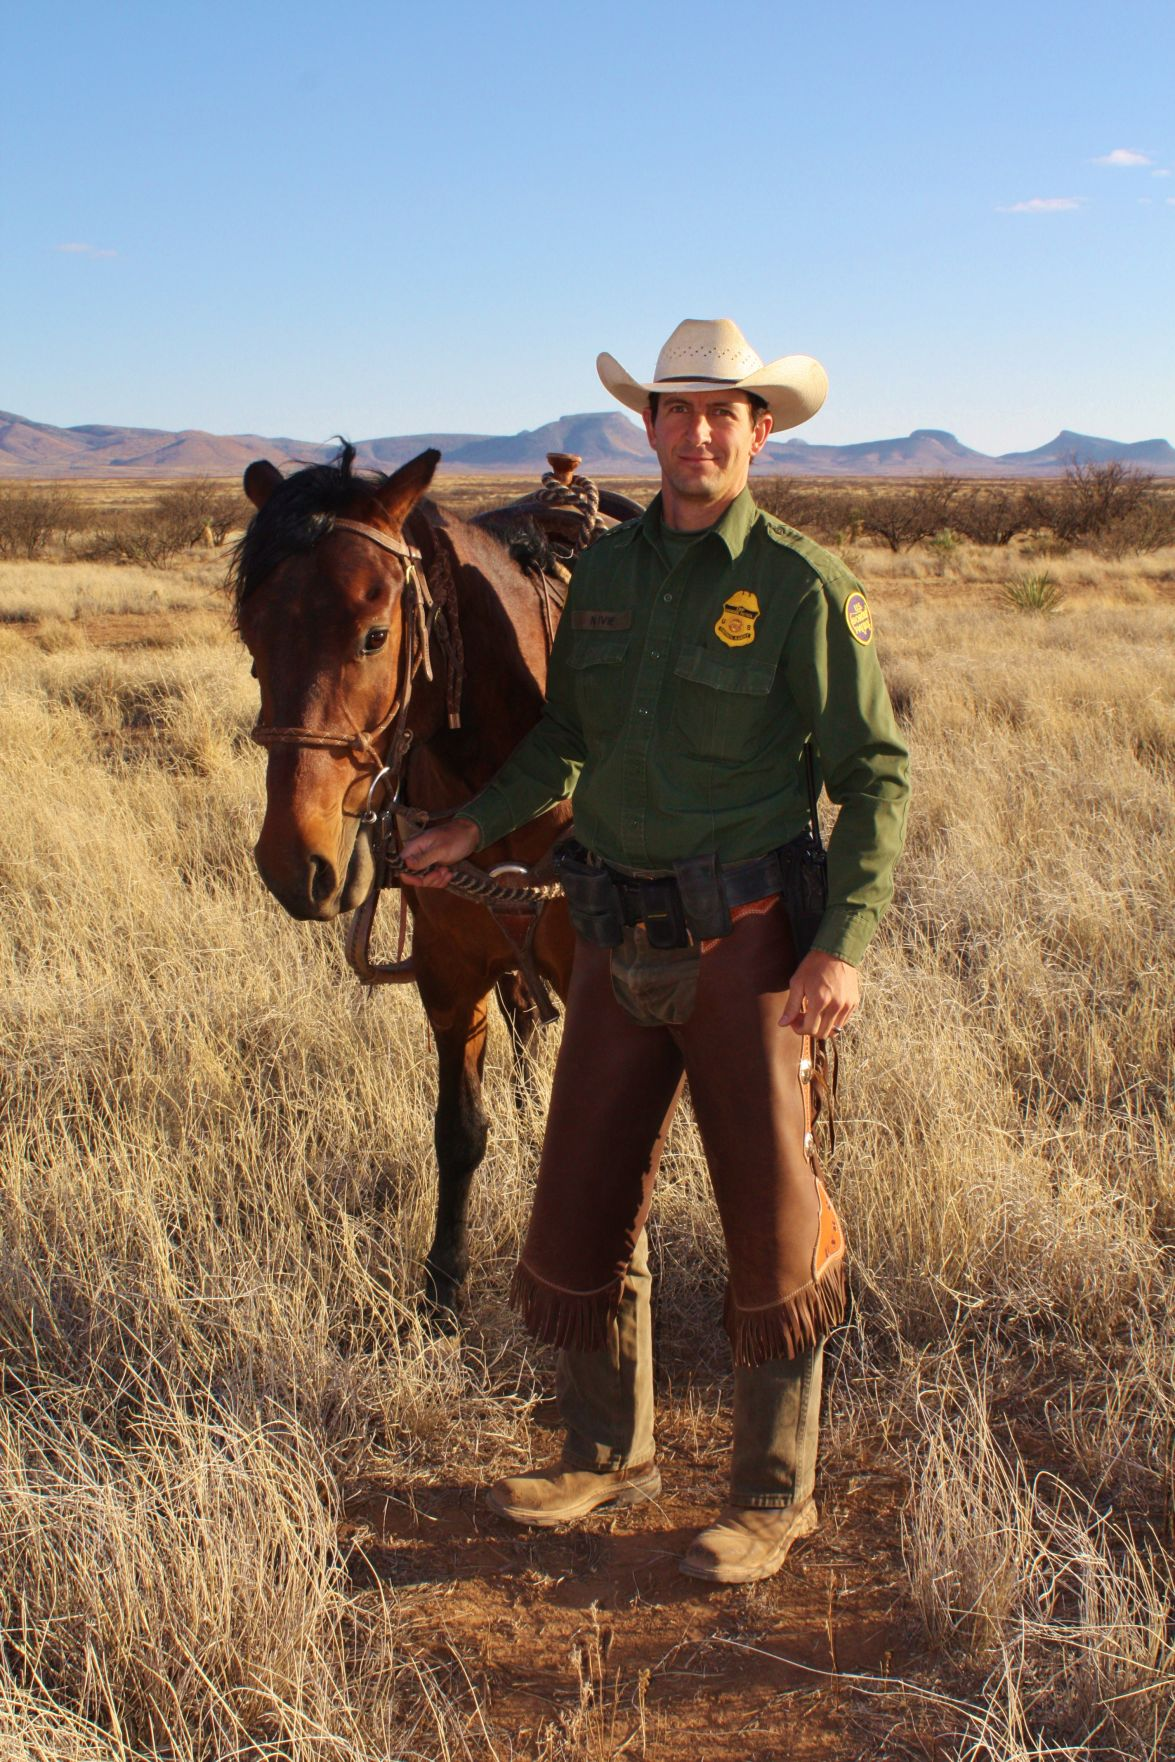 Union: Border agents opened fire on each other